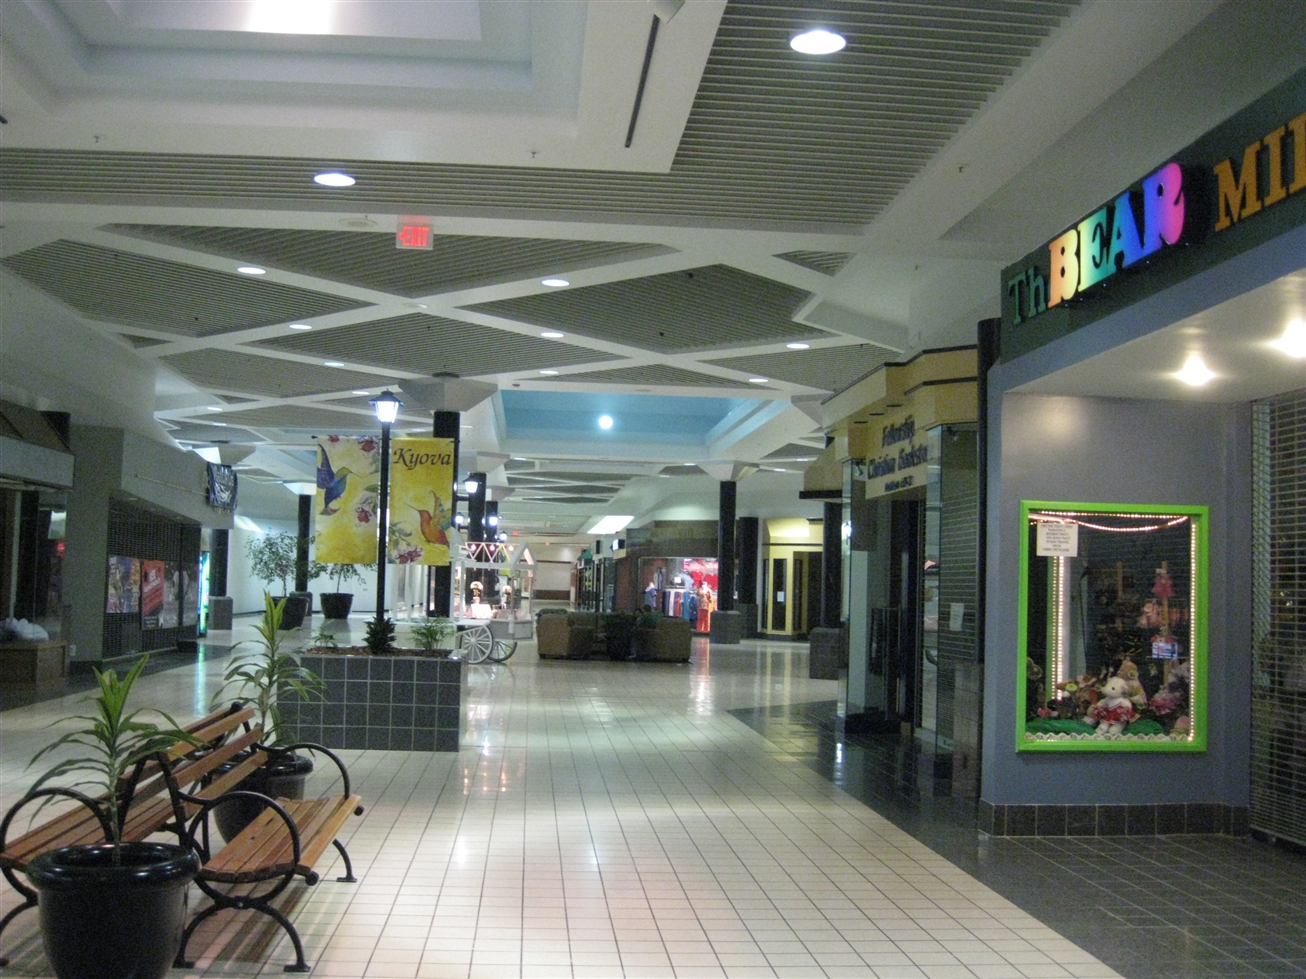 Kyova Tri-State Mall in Ashland, KY